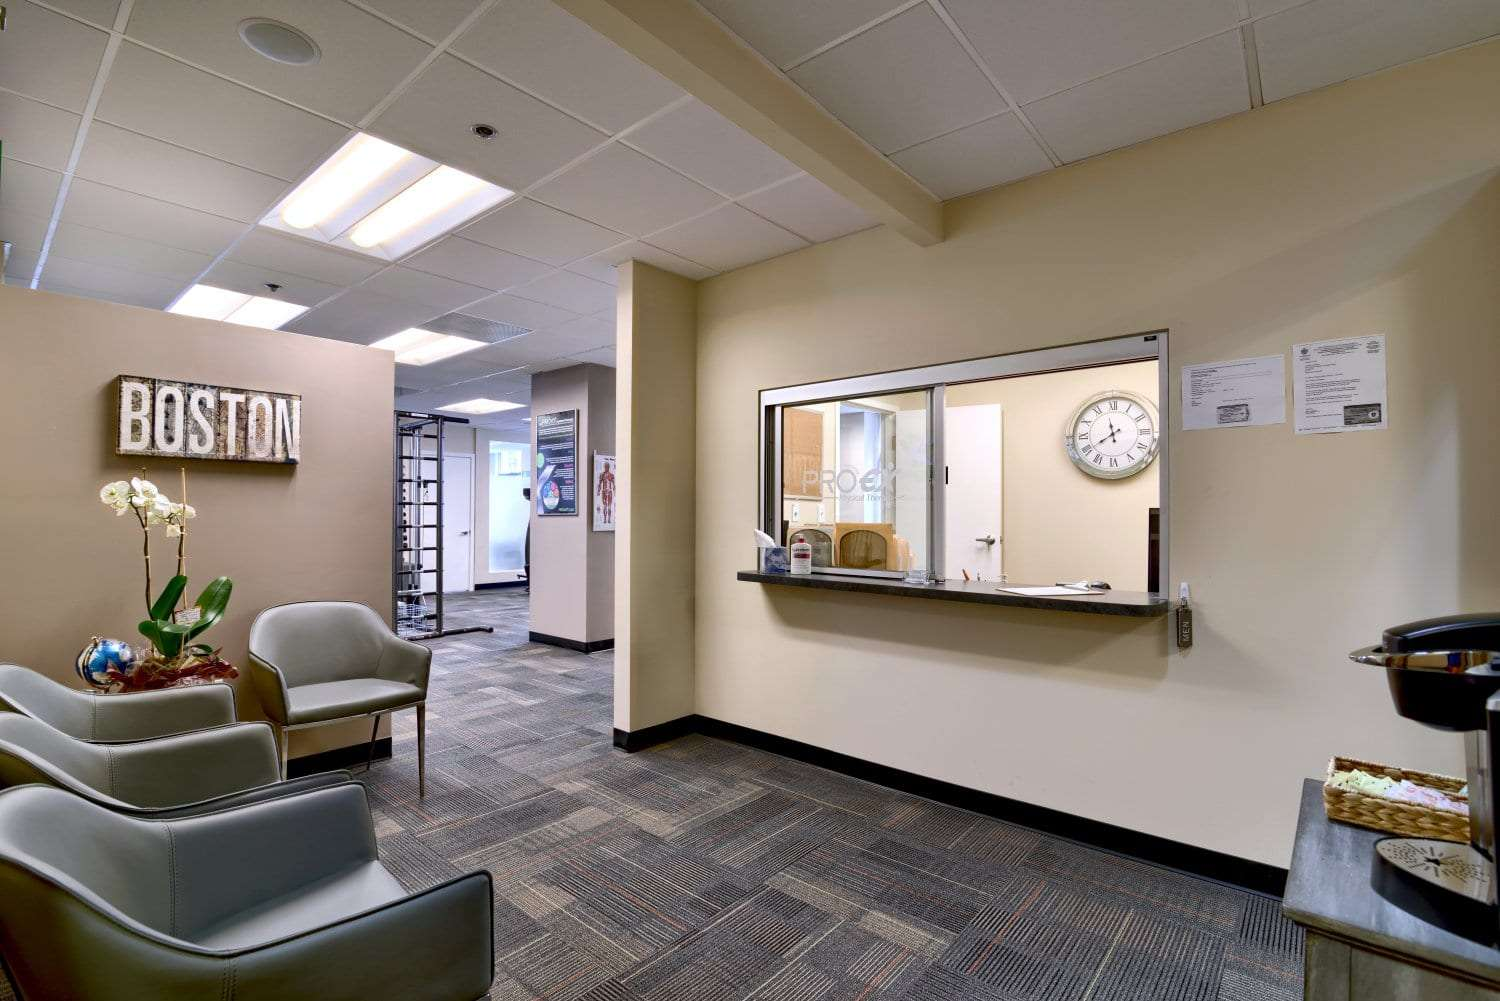 This is a photo of the patient waiting area at our physical therapy clinic in Boston, Massachusetts.